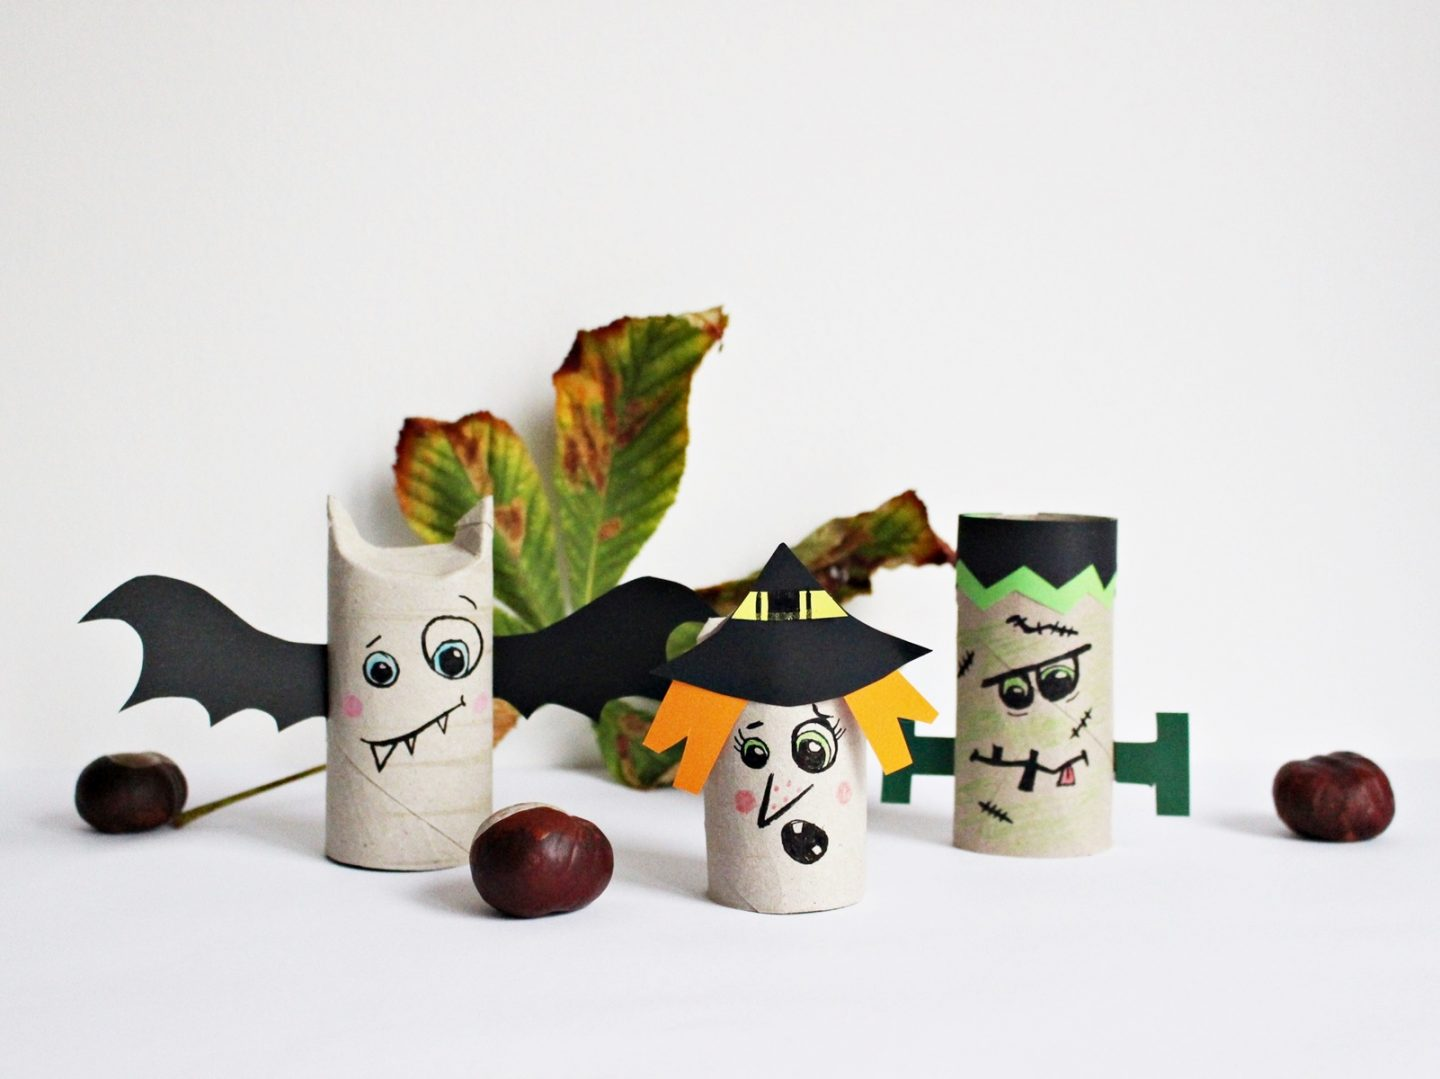 Diy Upcycling Spooky Doobi Boo 5 Minuten Halloween Deko Mit Papierrollen Basteln Starlights In The Kitchen